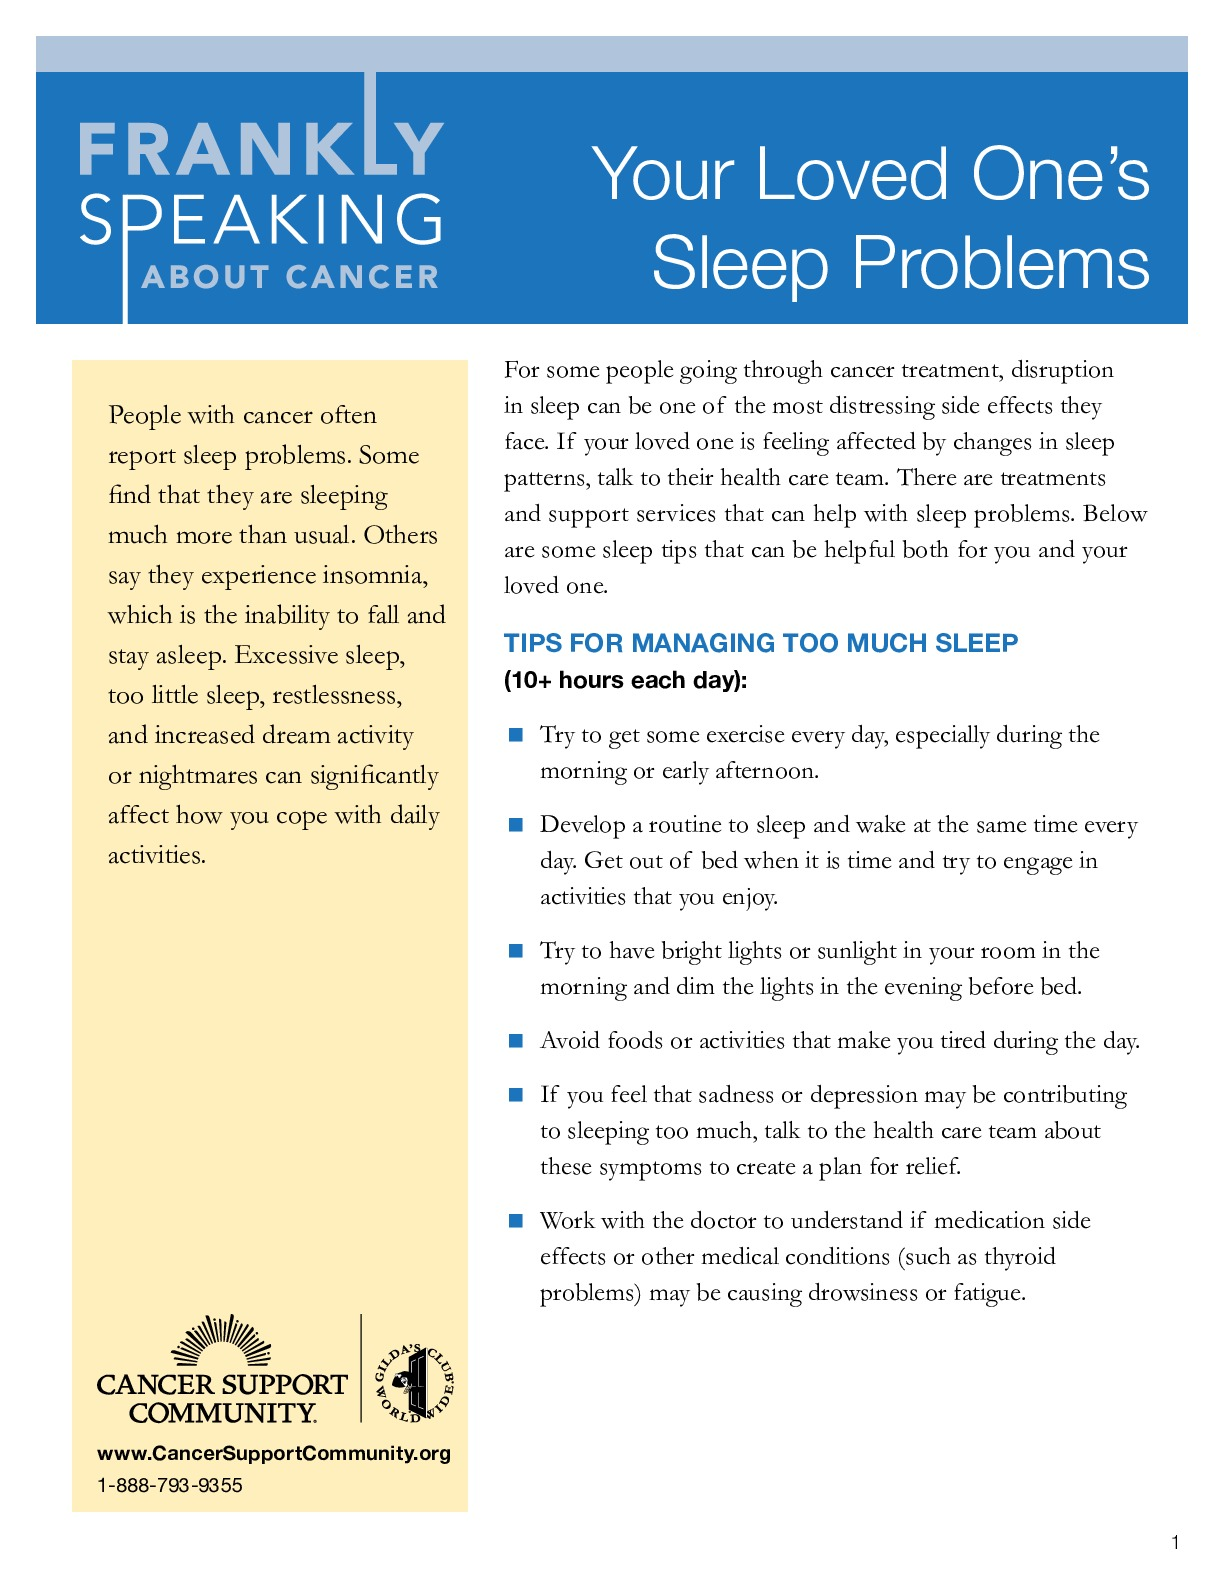 Your Loved One's Sleep Problems